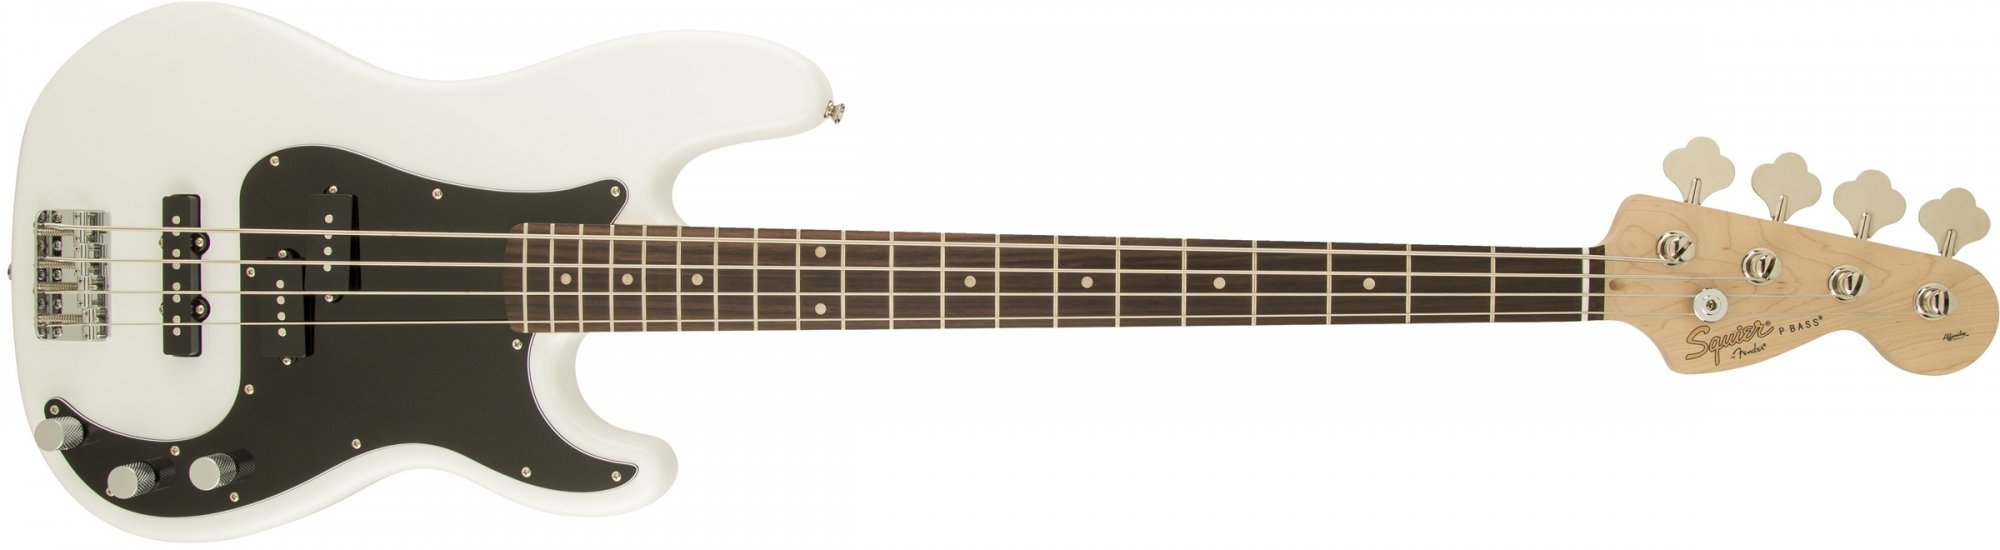 Fender Squier Affinity PJ Bass Olympic White